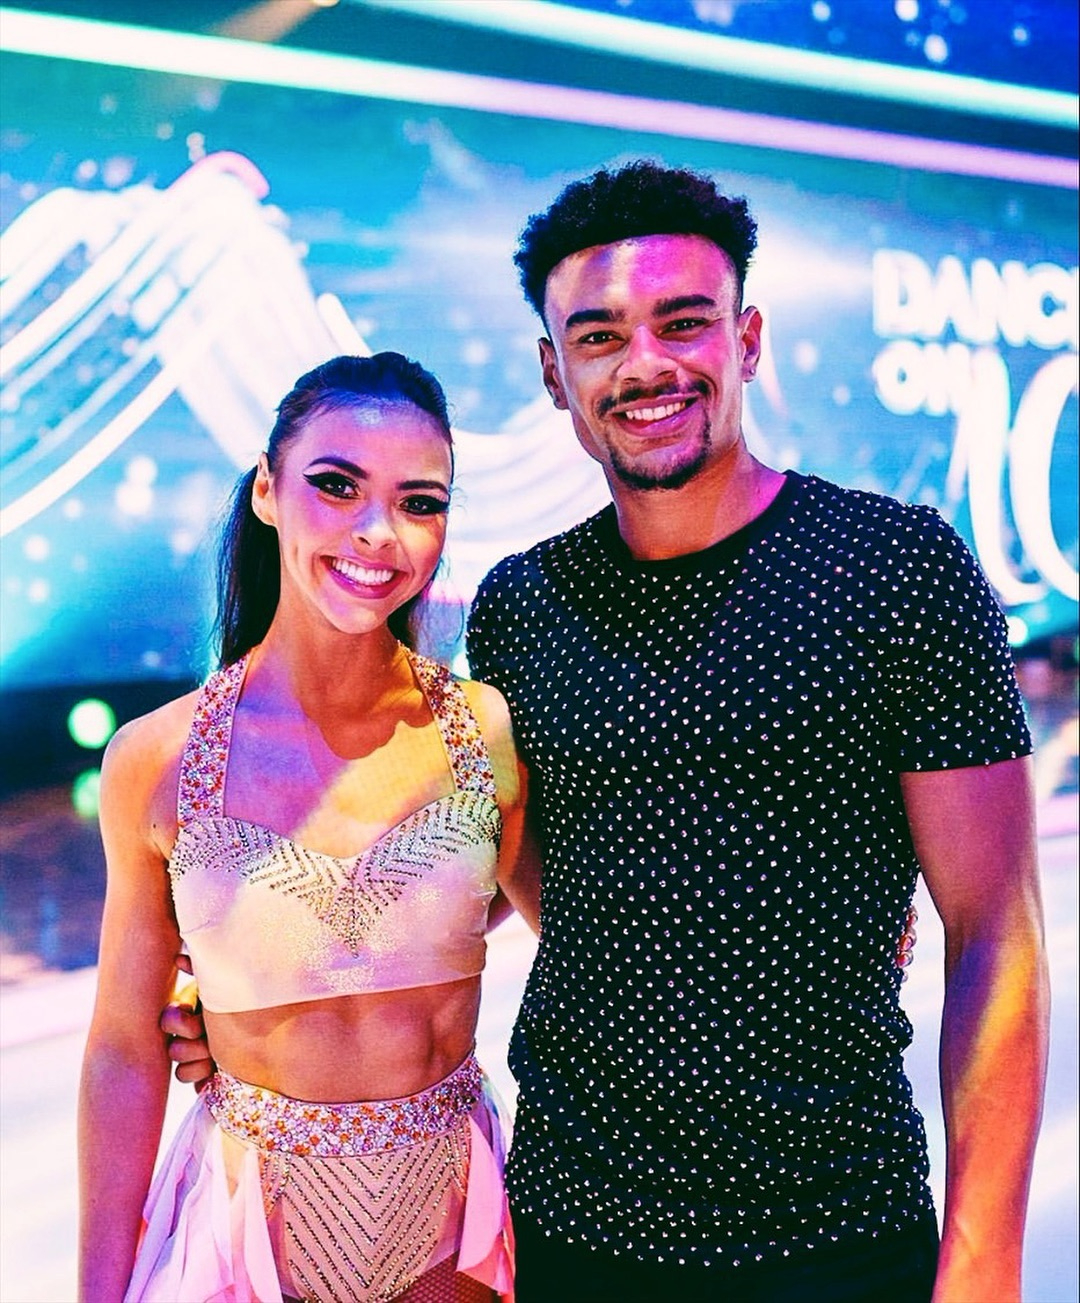 Vanessa Bauer, left, is partnered with Wes Nelson, right, on Dancing On Ice